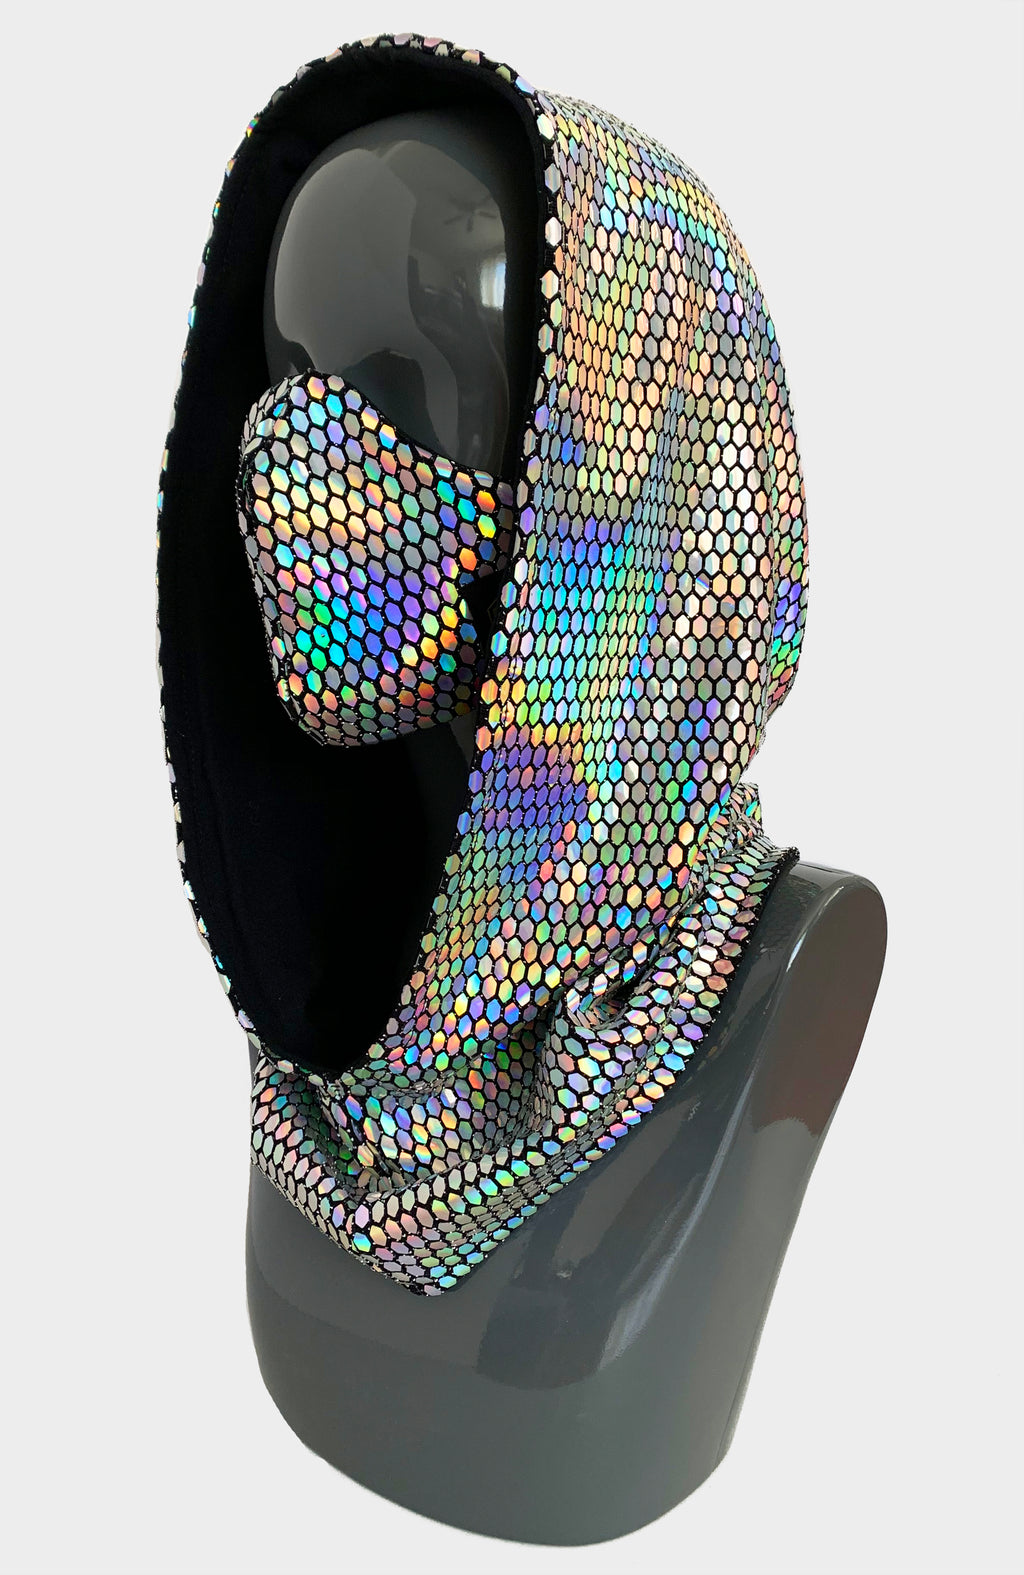 Northern Lights Mask and Hood